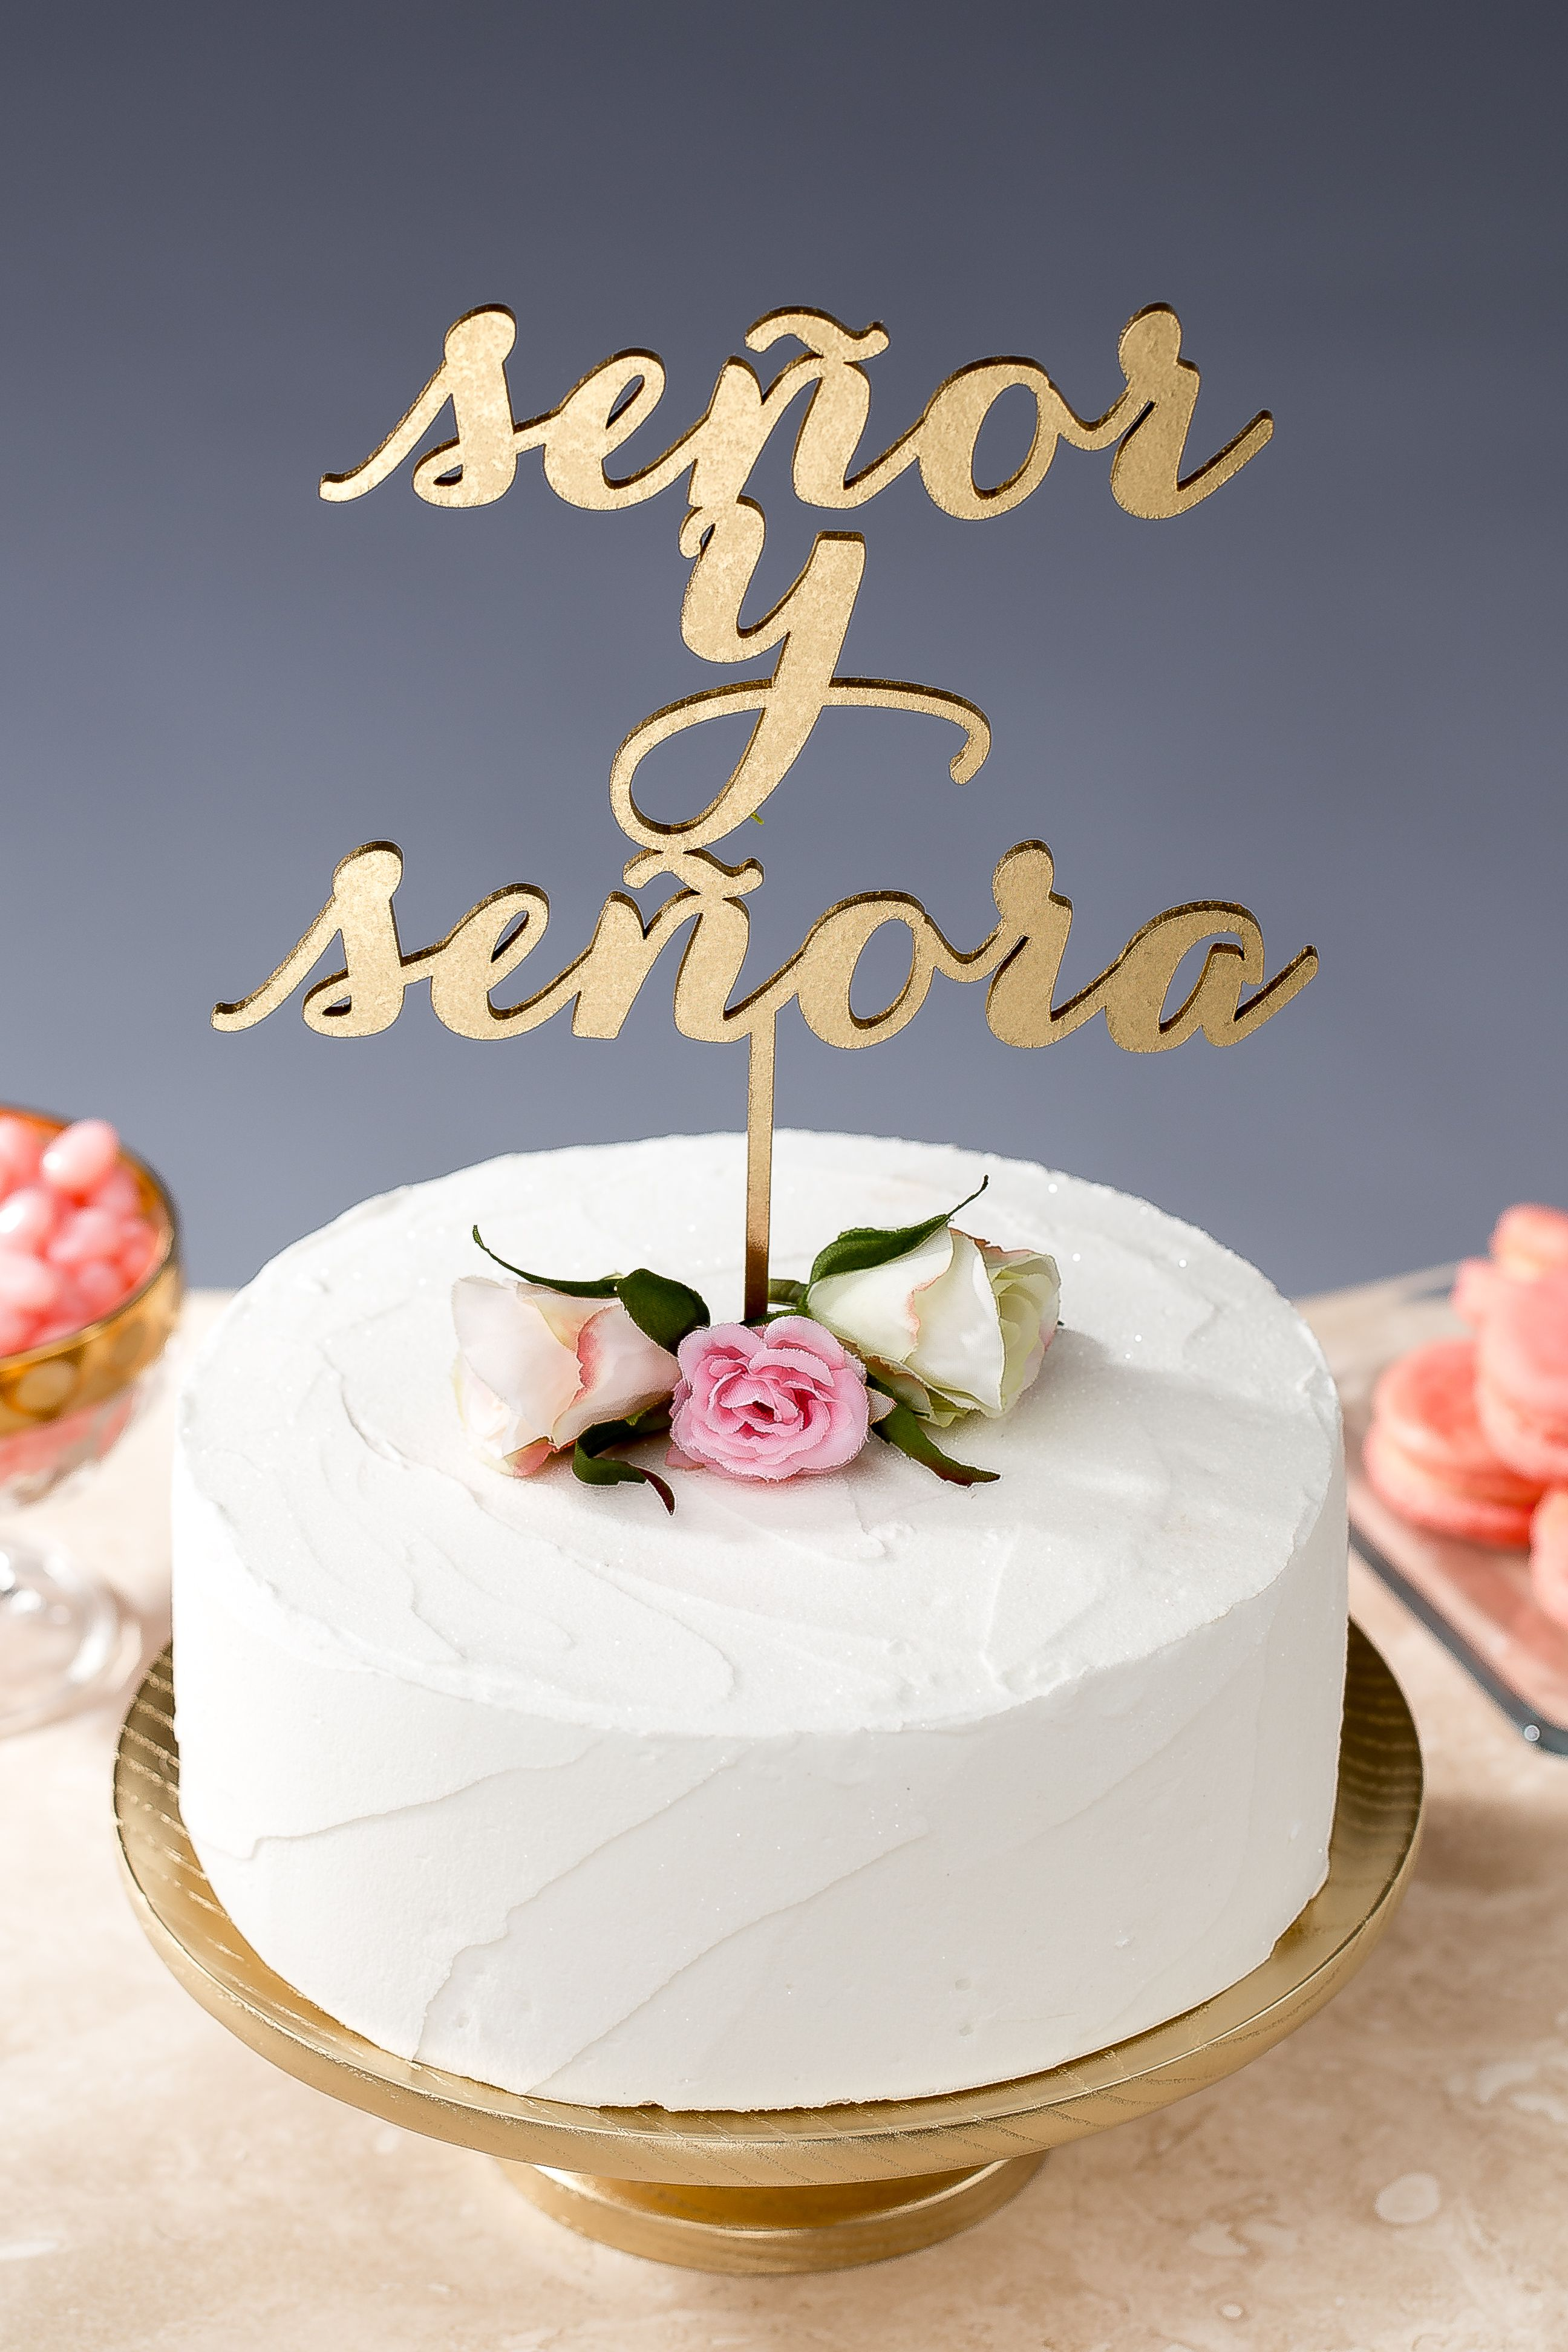 Decoration ideas for 40th wedding anniversary  Spanish cake topper by Better Off Wed on Etsy sy